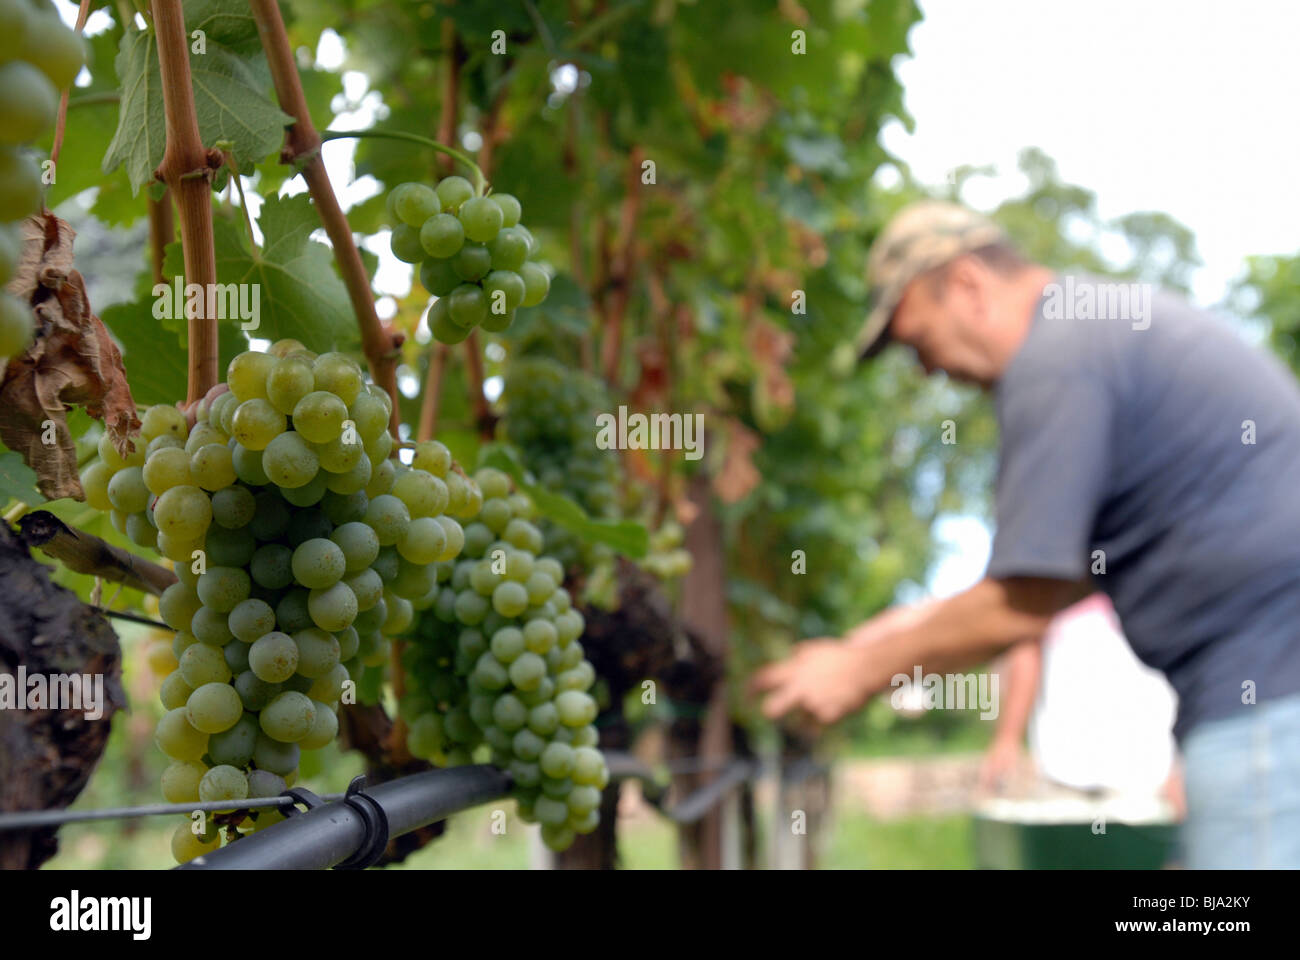 Grape harvest, Merano, Italy - Stock Image